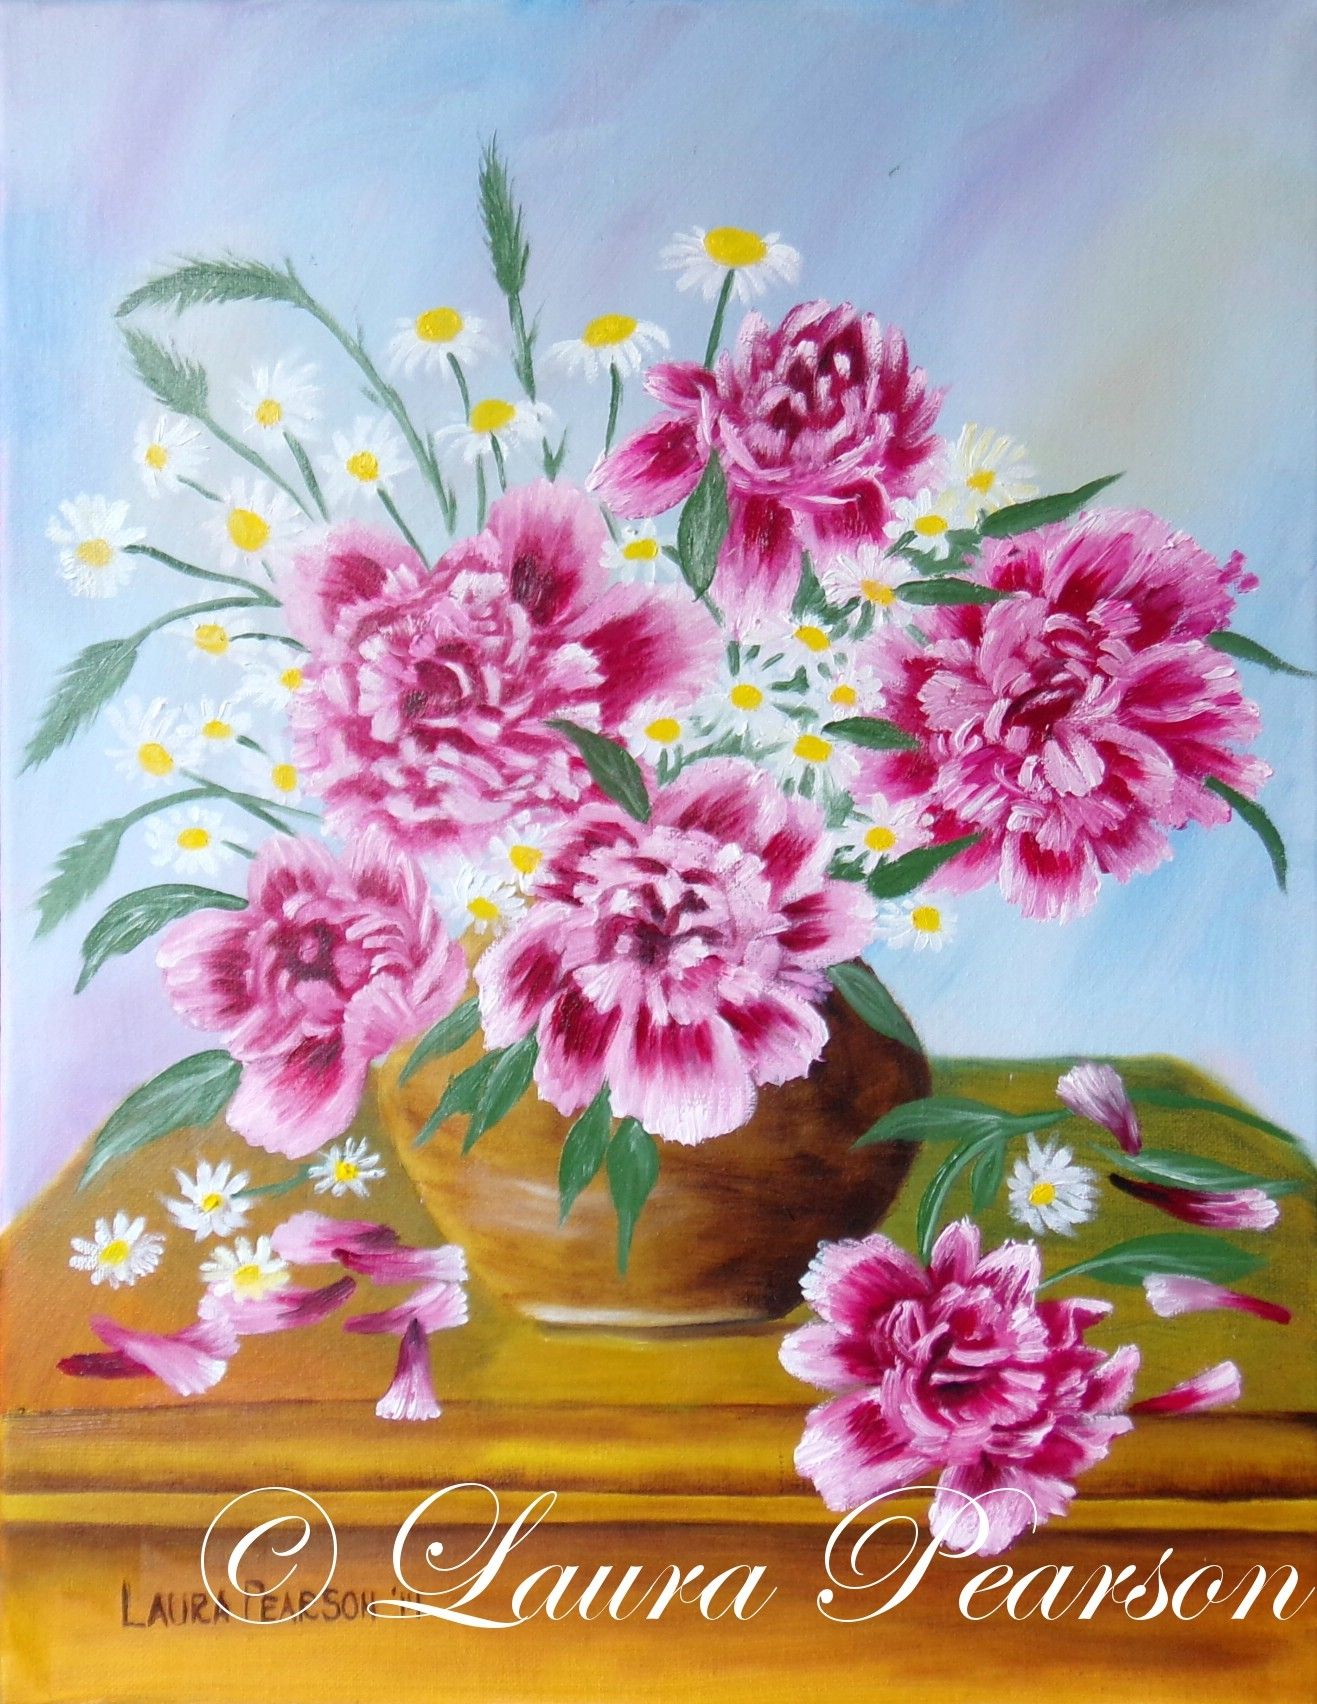 Peonies and daisies colorful beautiful pink god flowers jesus art ...